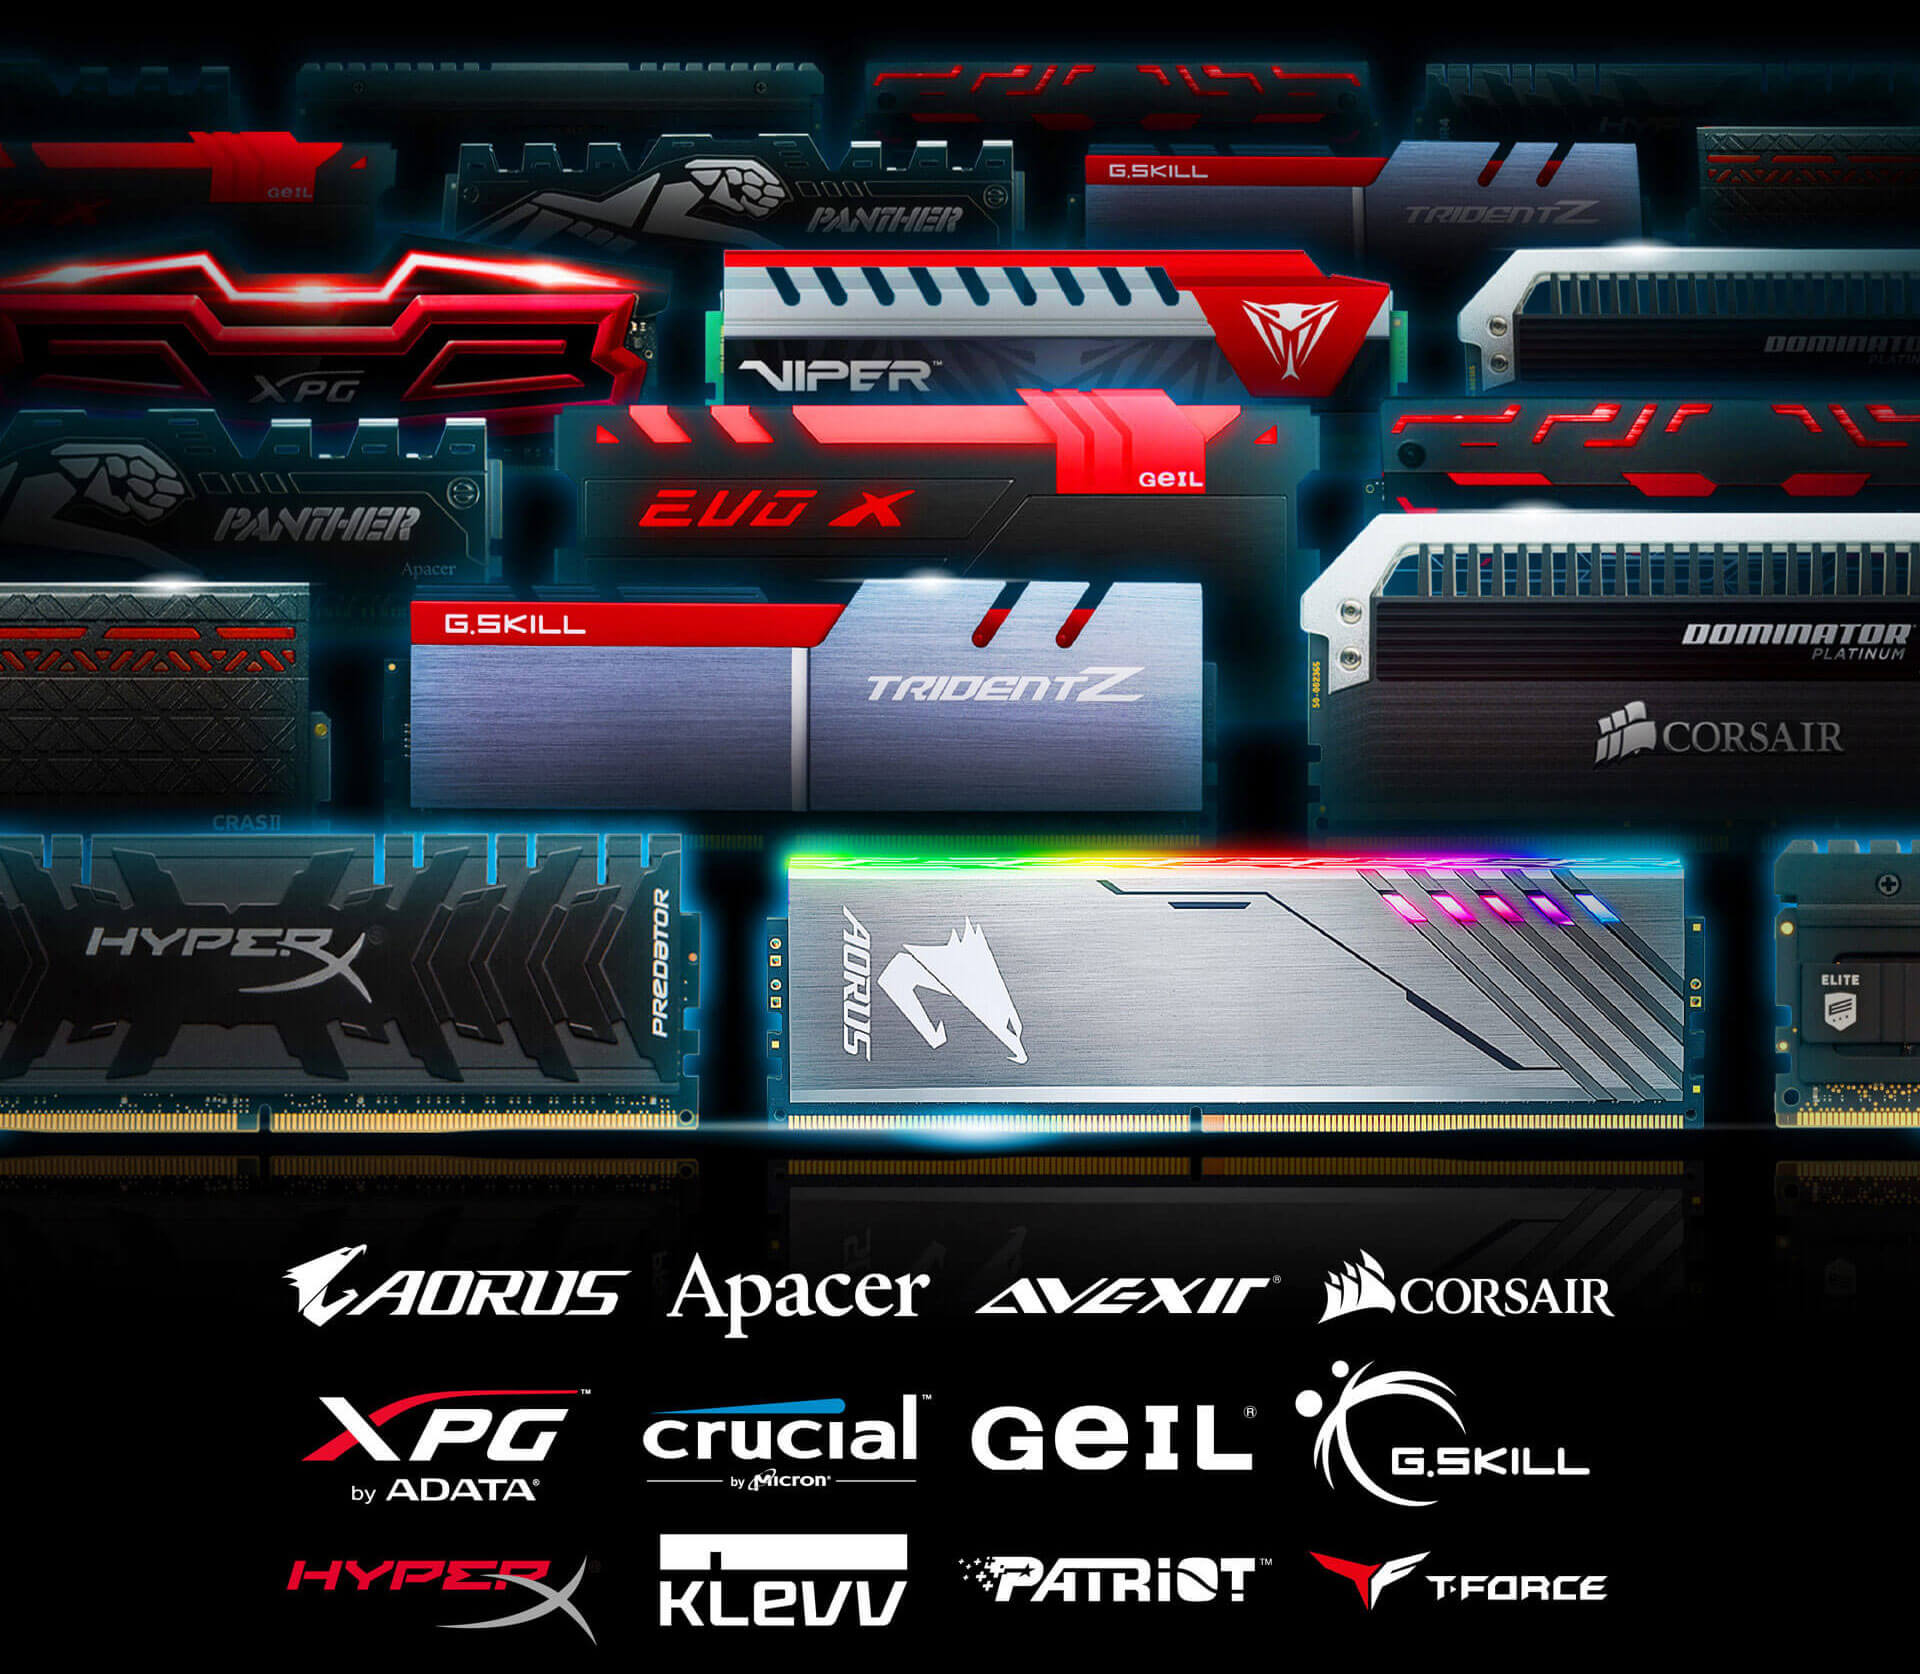 ddr, many different brand  of DDR4 as background, aorus, apacer, corsair, XPG, crucial, geil, g.skill, hyper, klevv, patriot, t.force